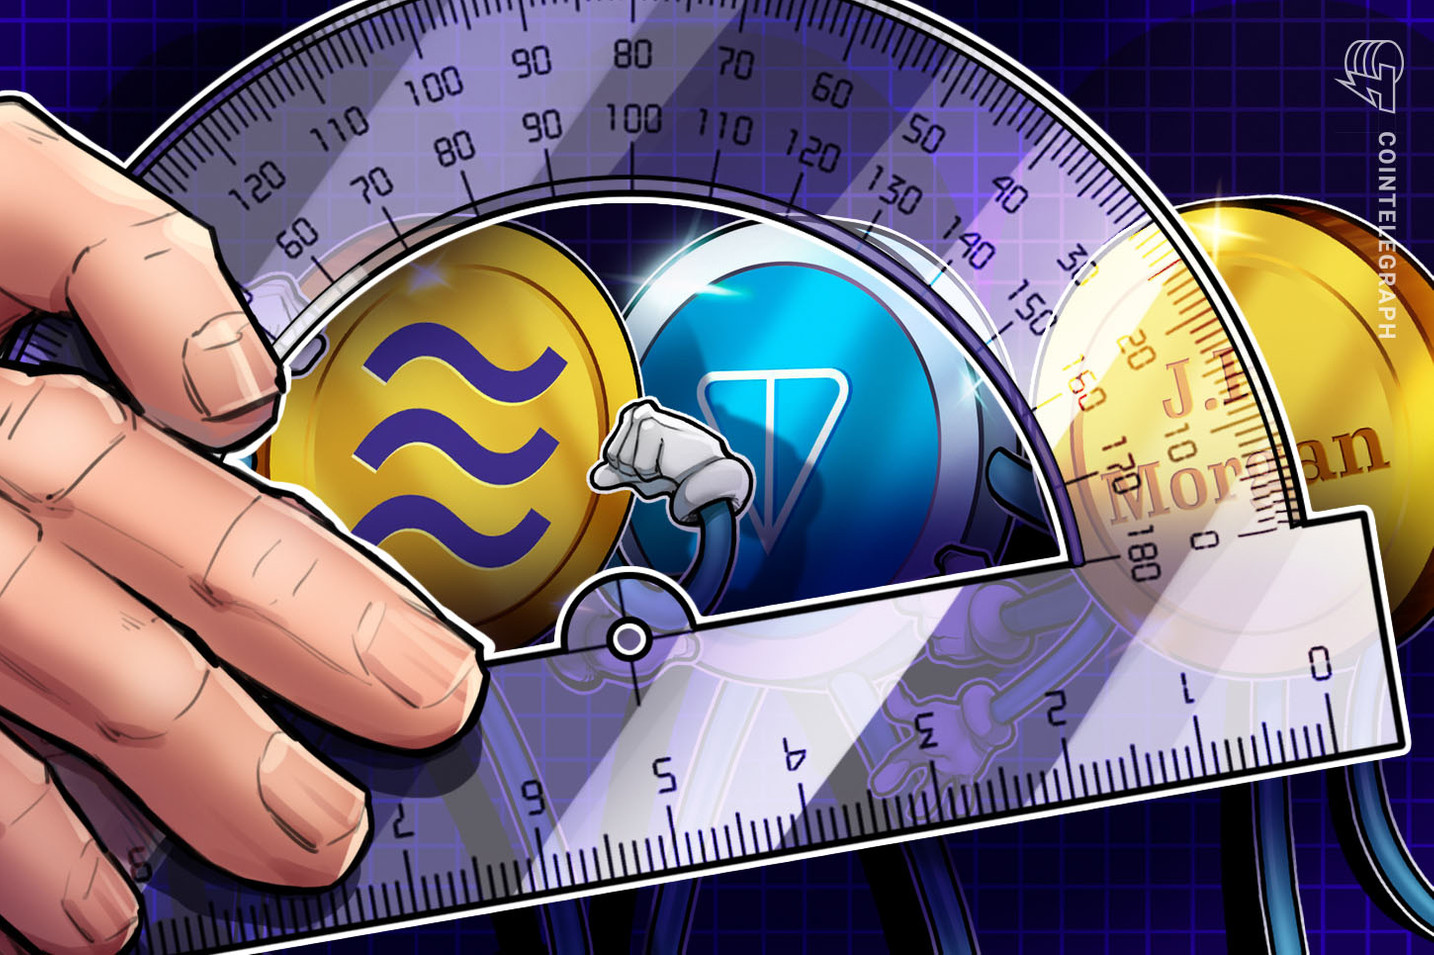 Libra, TON and JPMorgan Coin Compared: Are They Heroes or Villains?